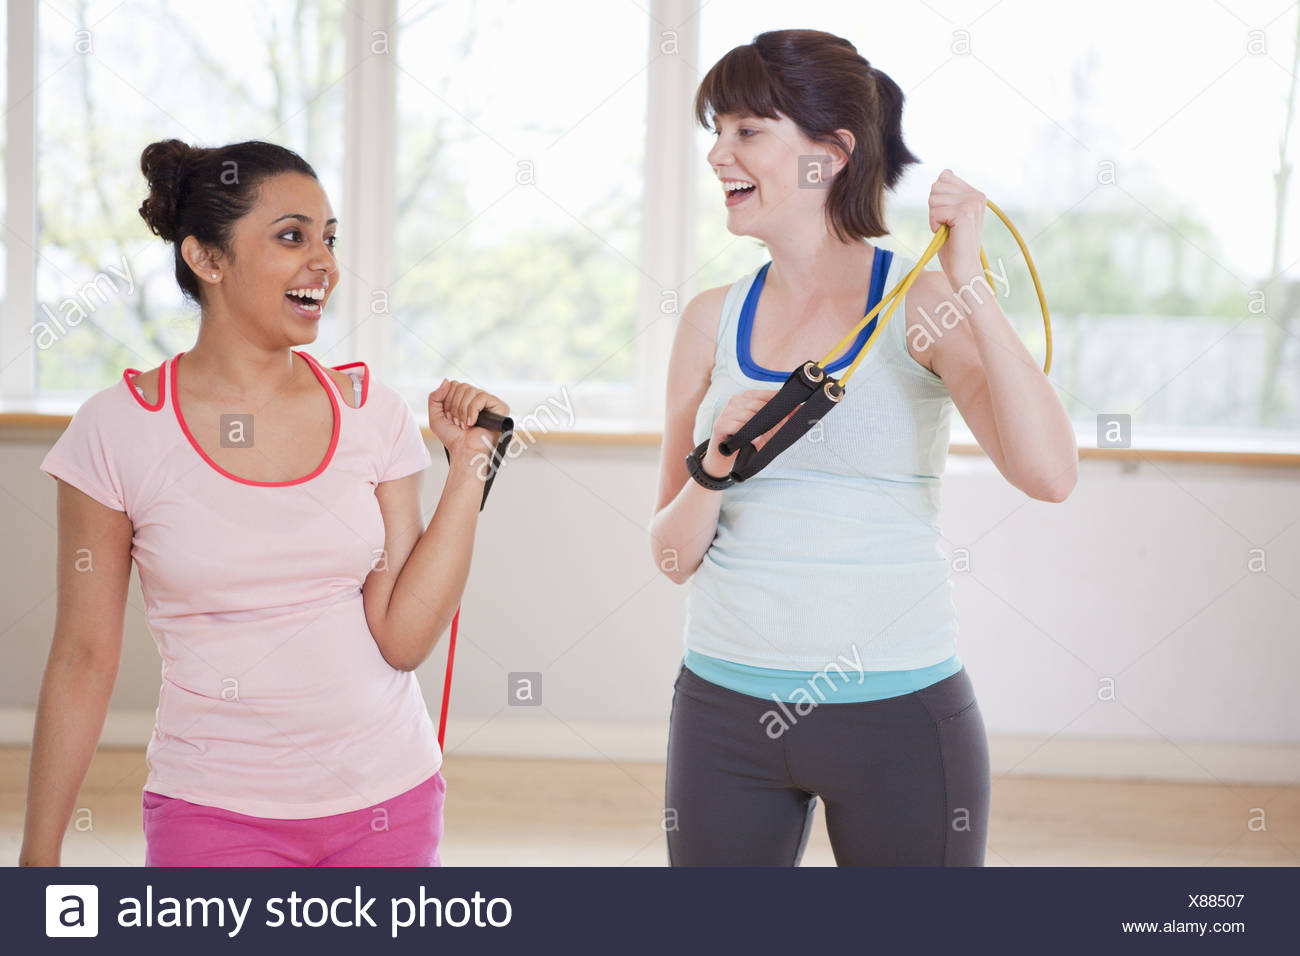 Women carrying resistance band in gym - Stock Image